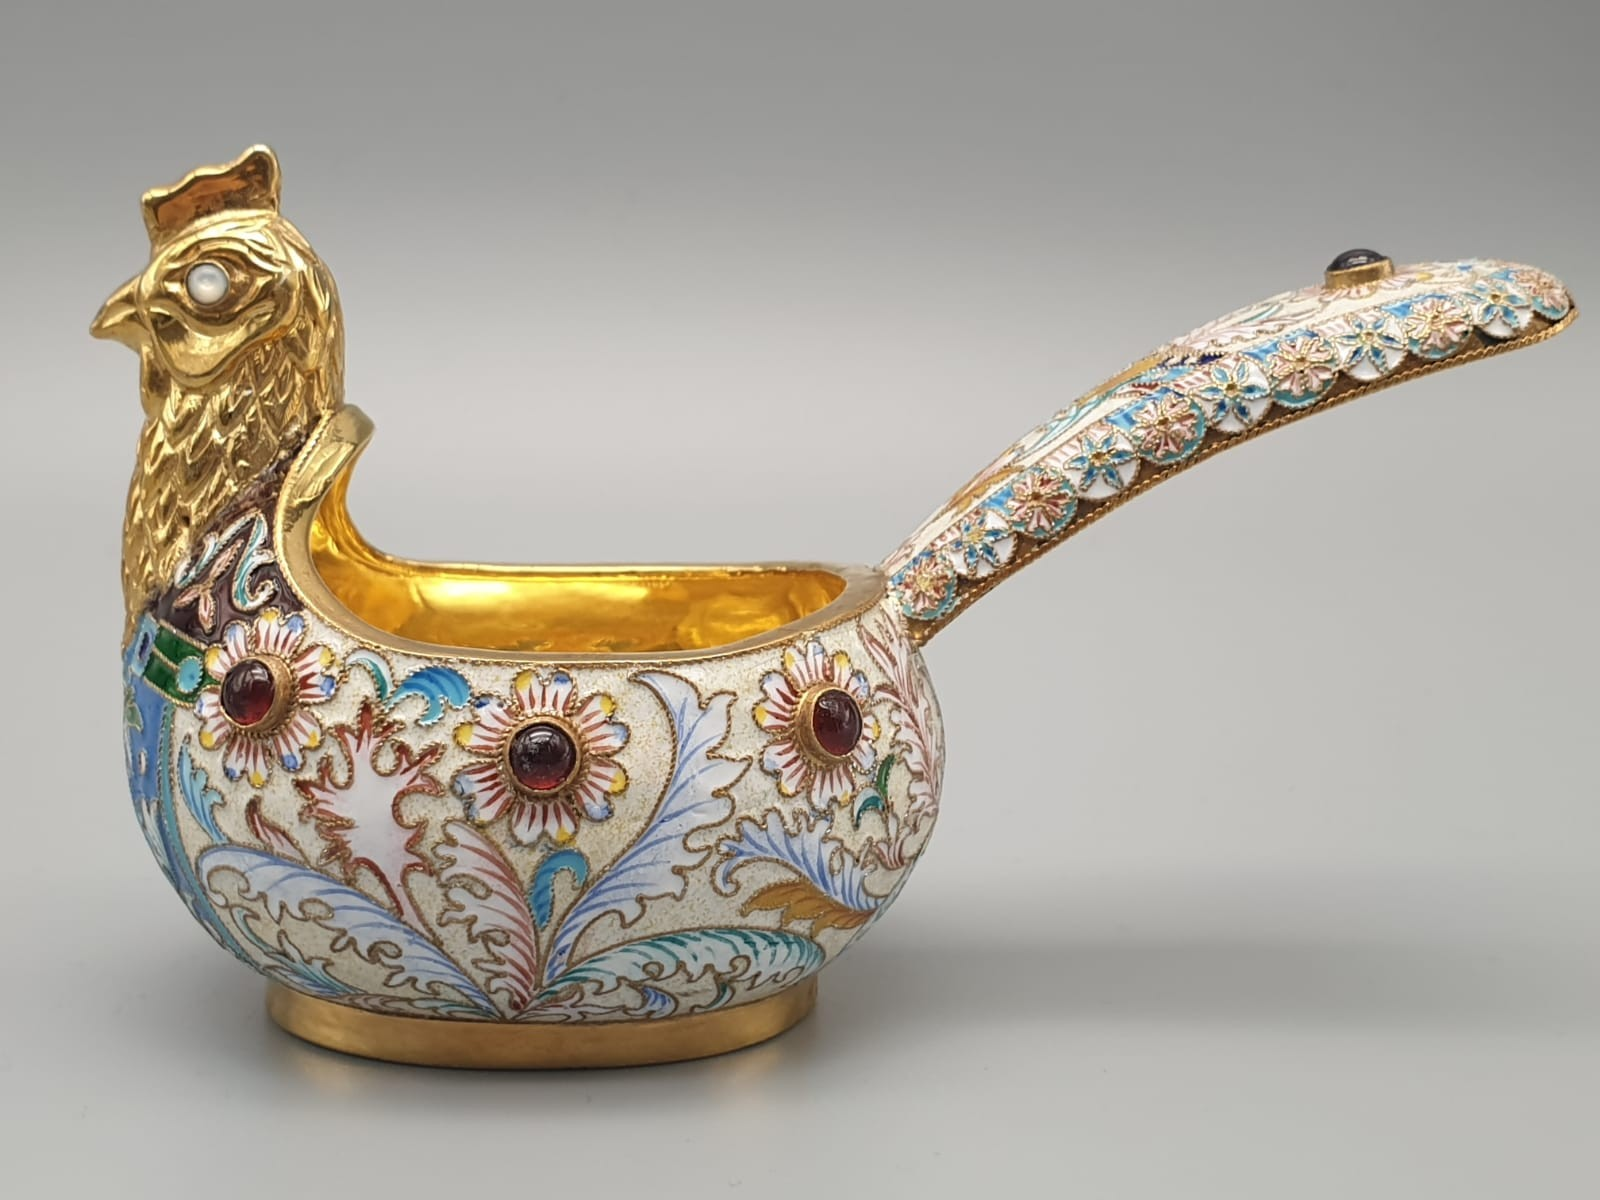 Pair of Russian 20th century silver enamel gemset kavosch bowl in the form of birds, an exquisite - Image 3 of 29